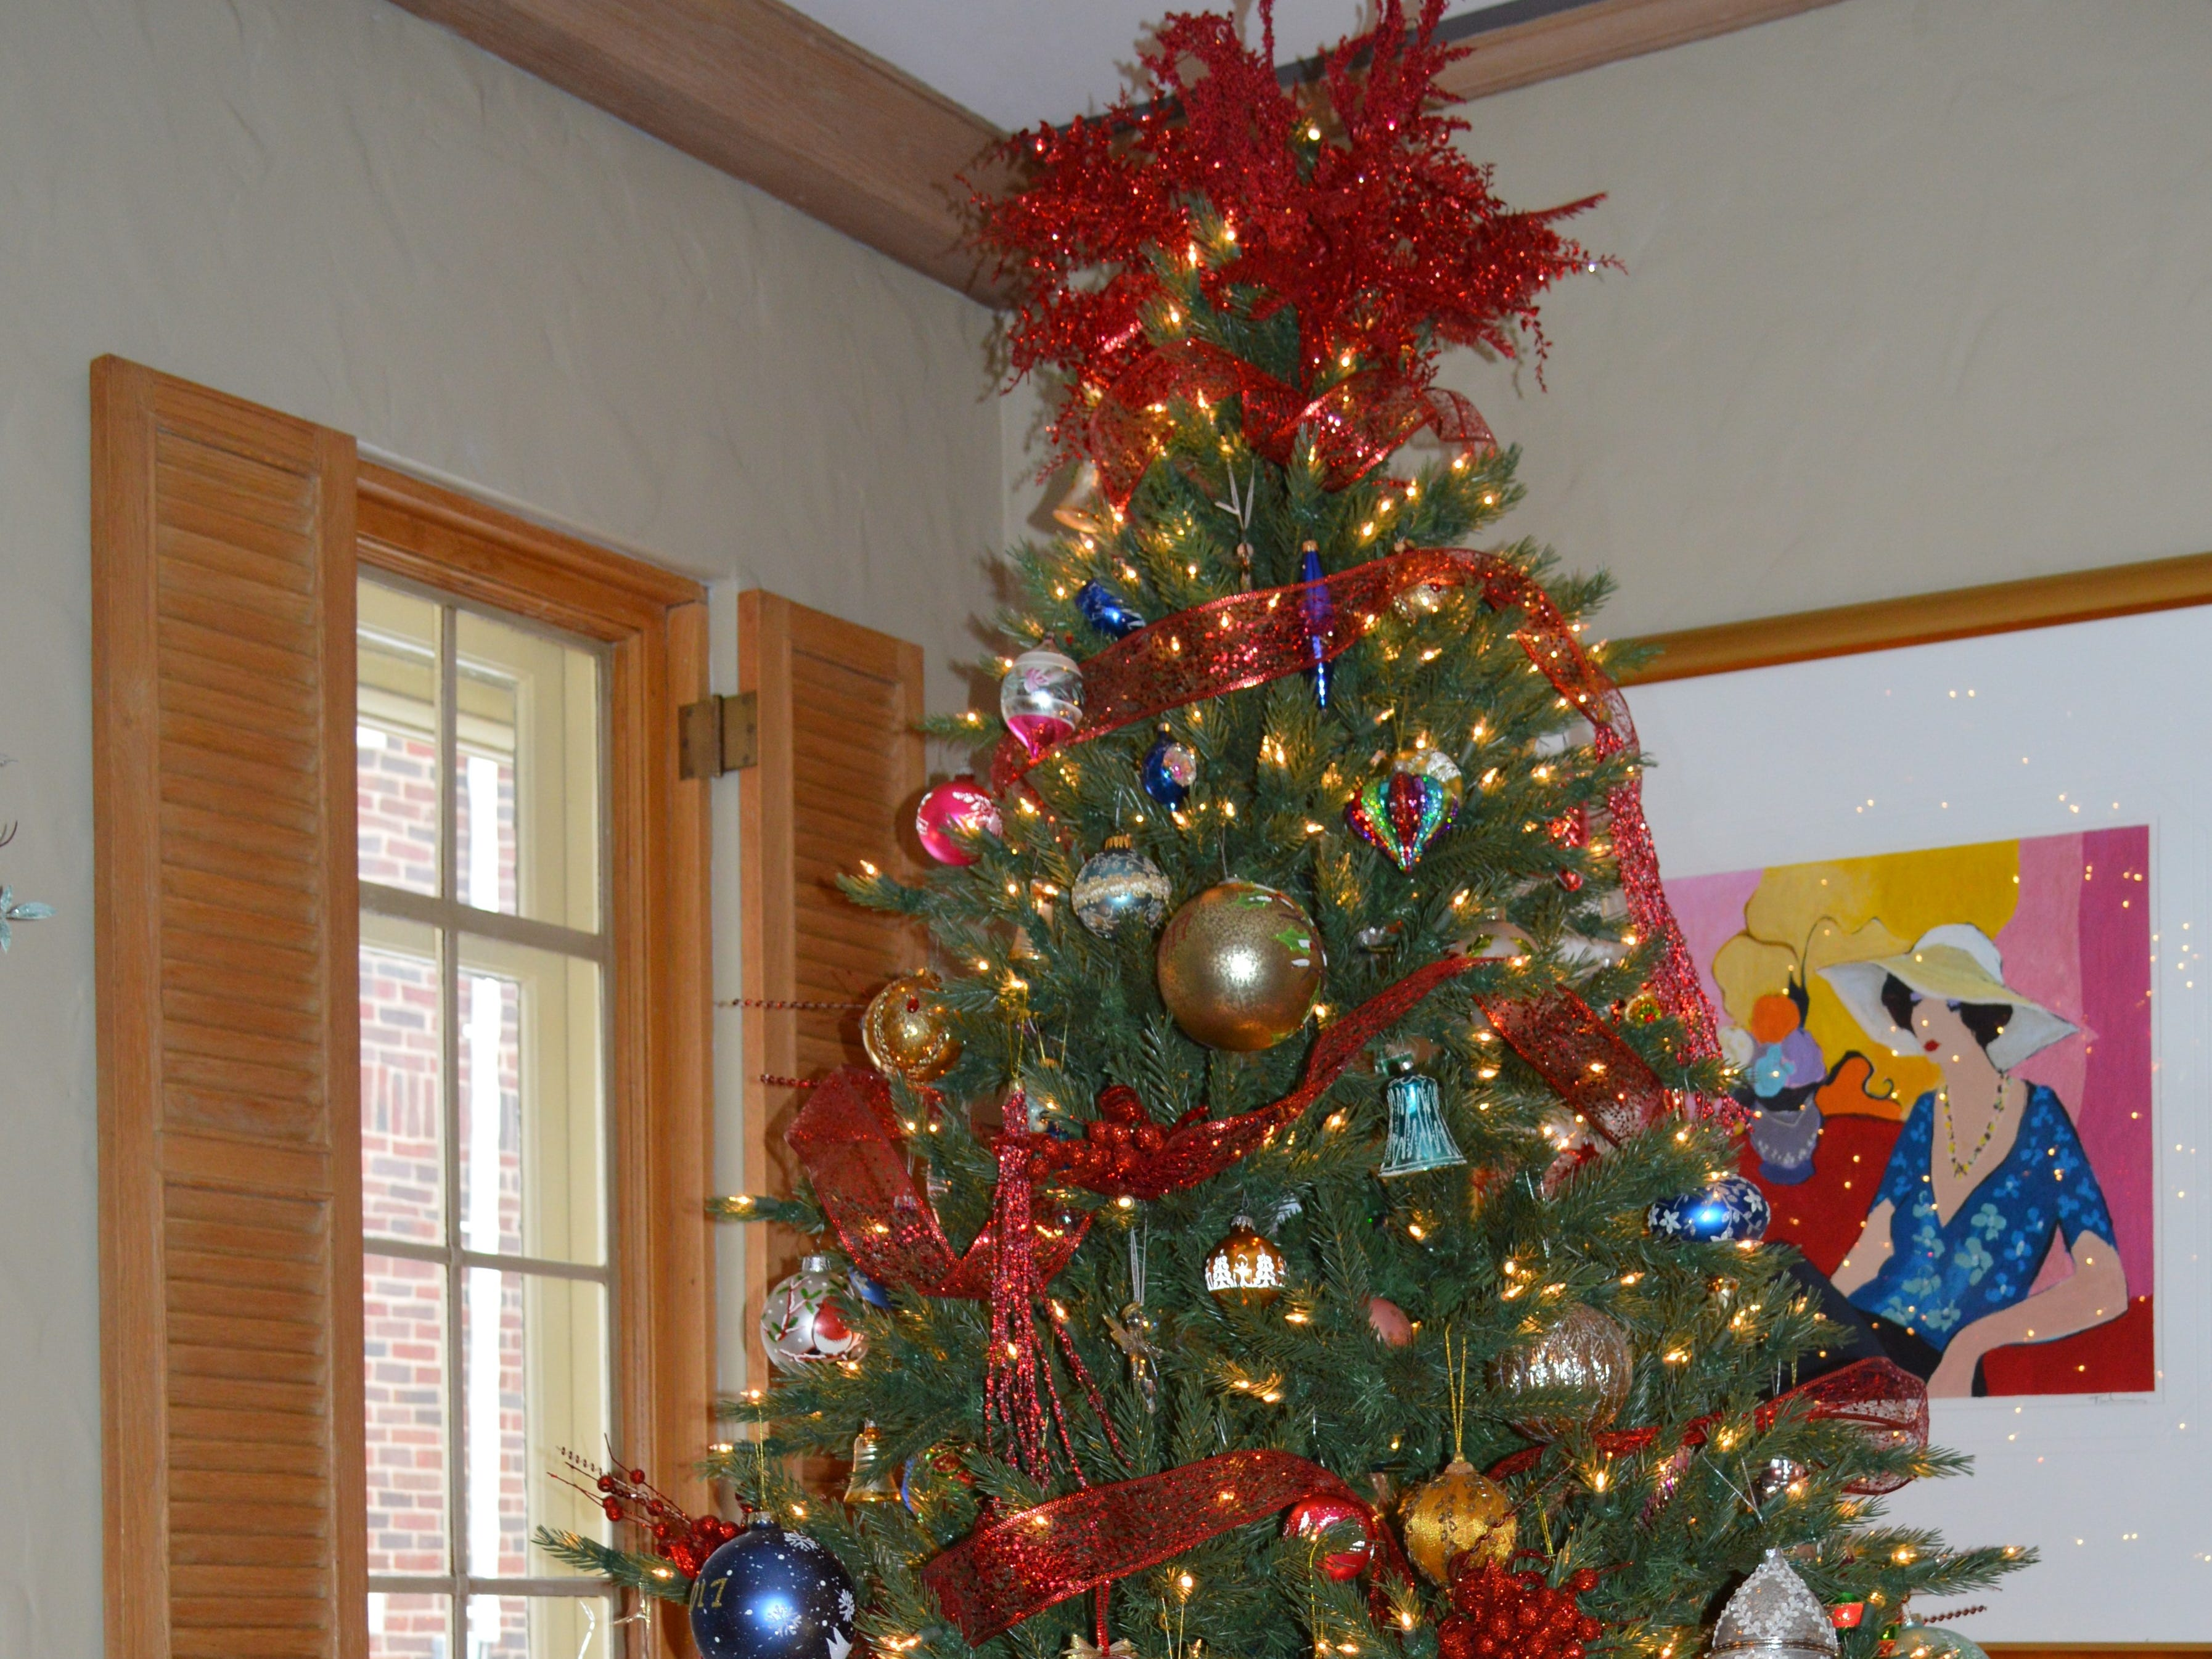 The Oelstrom's tree features a collection of ornaments Dann and Kathy Oelstrom gathered over the years.